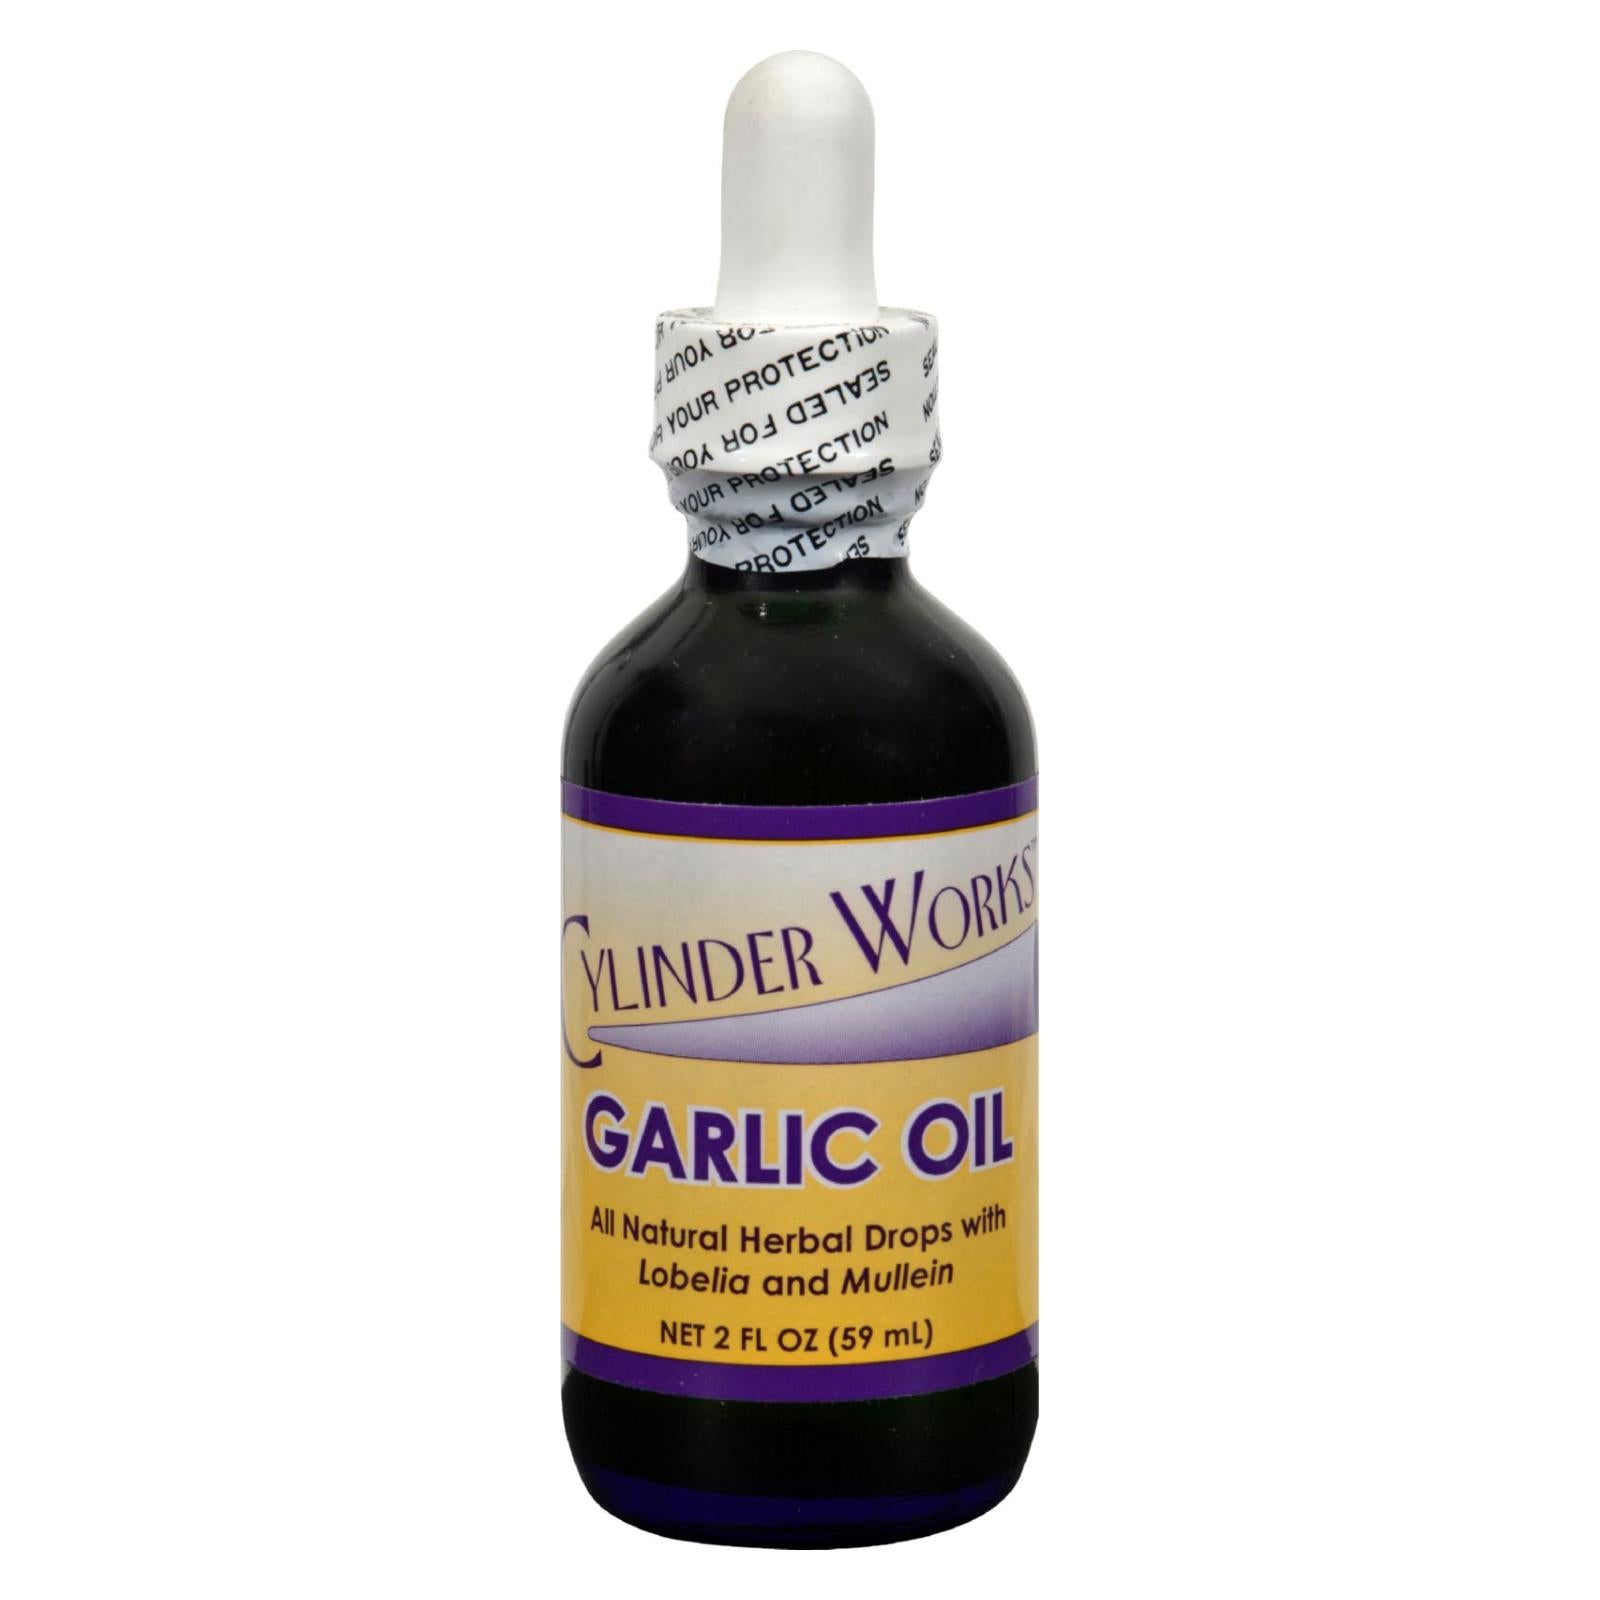 Cylinder Works - Garlic Oil - 2 Oz